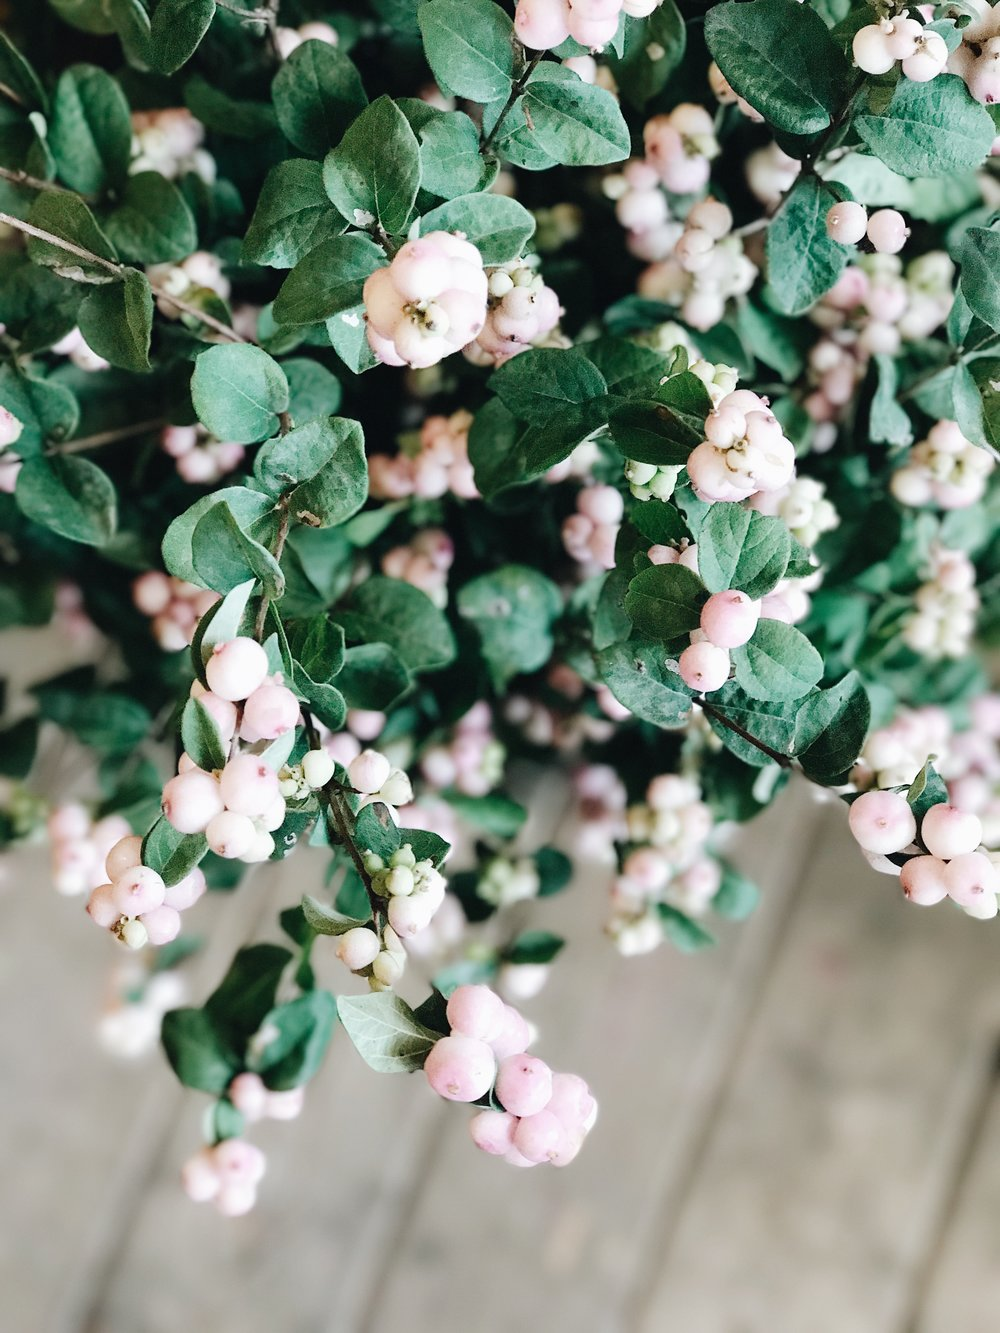 Fall Flowers 101, Snowberry, Nyla Free Designs Inc.